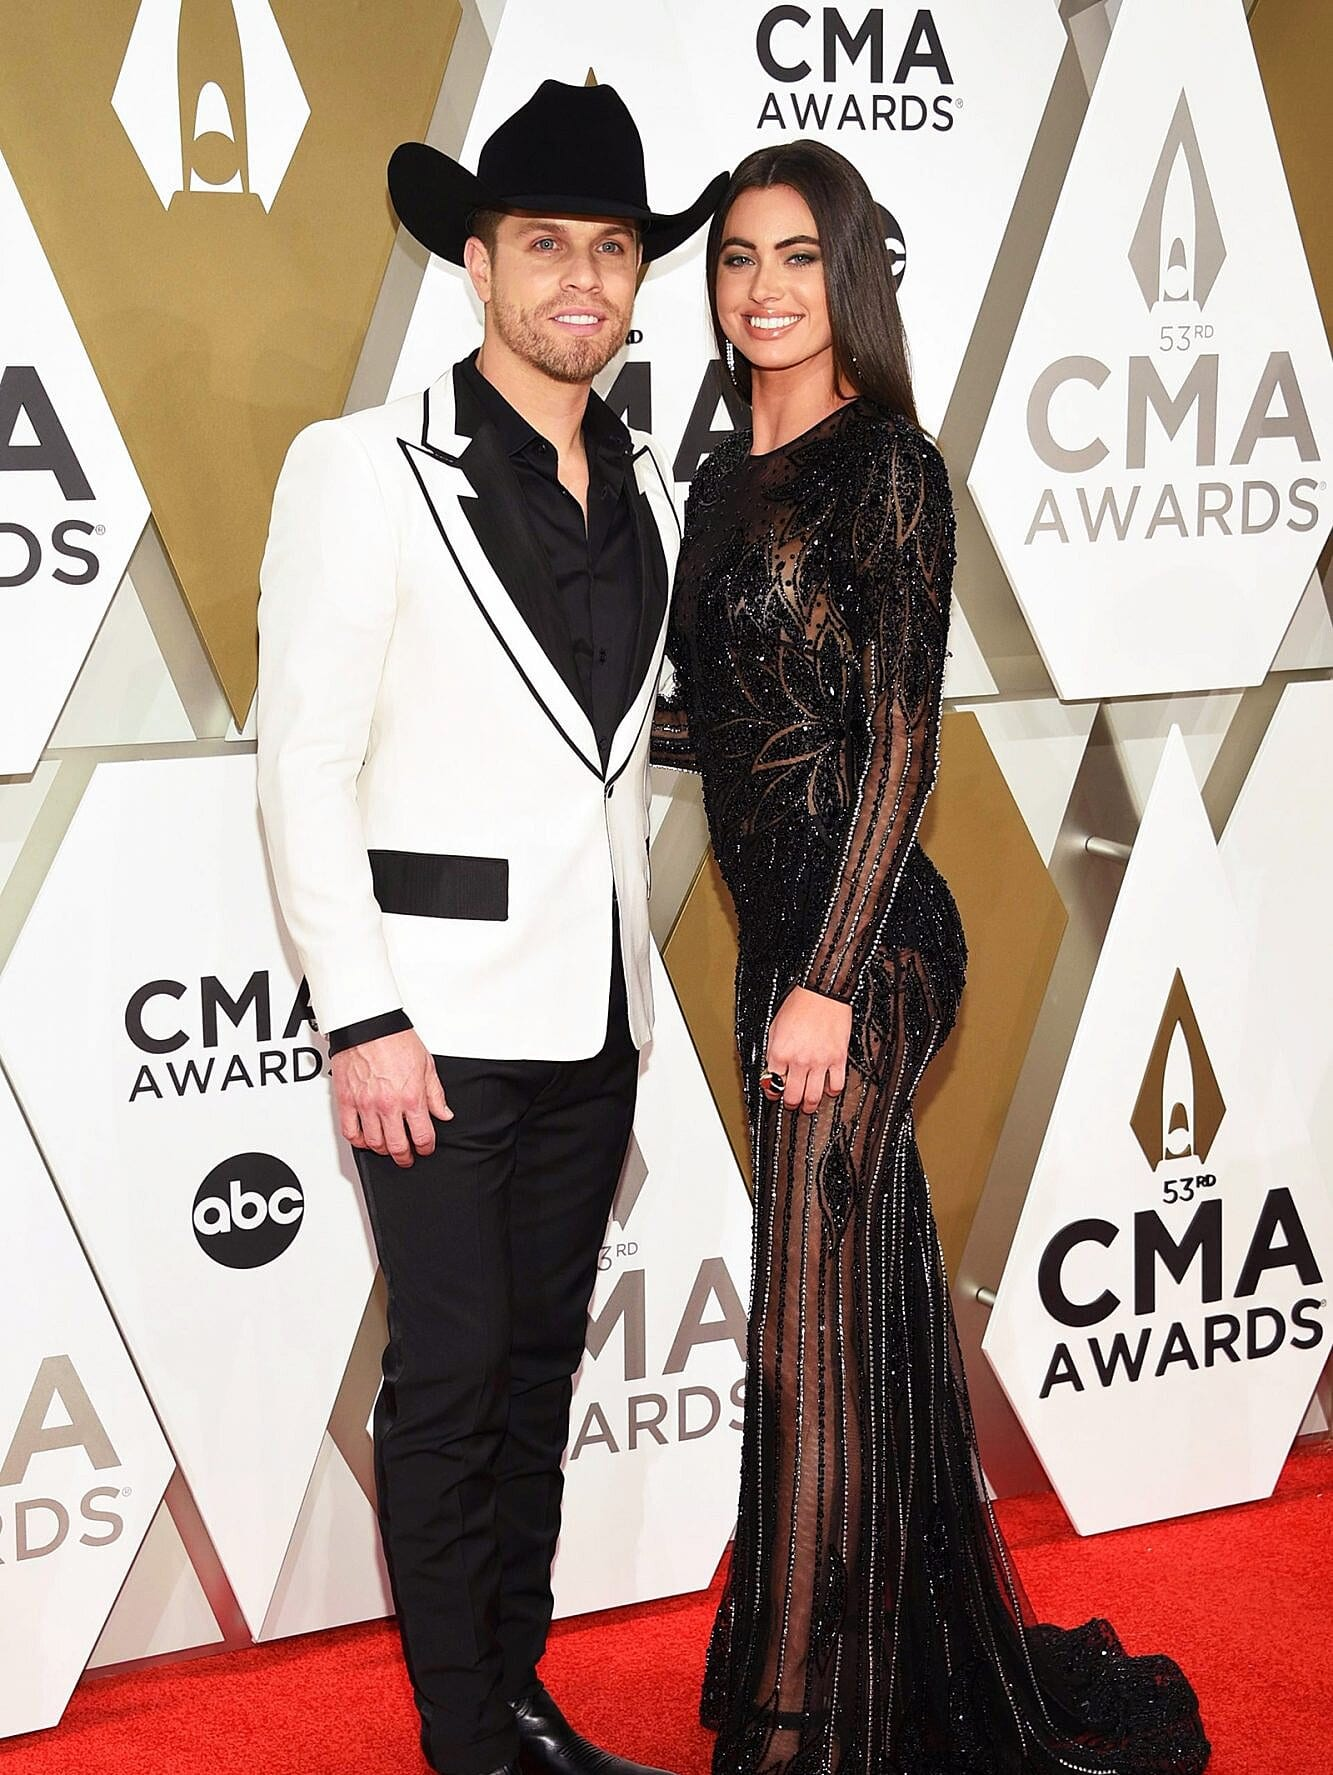 Who is Dustin Lynch Dating?